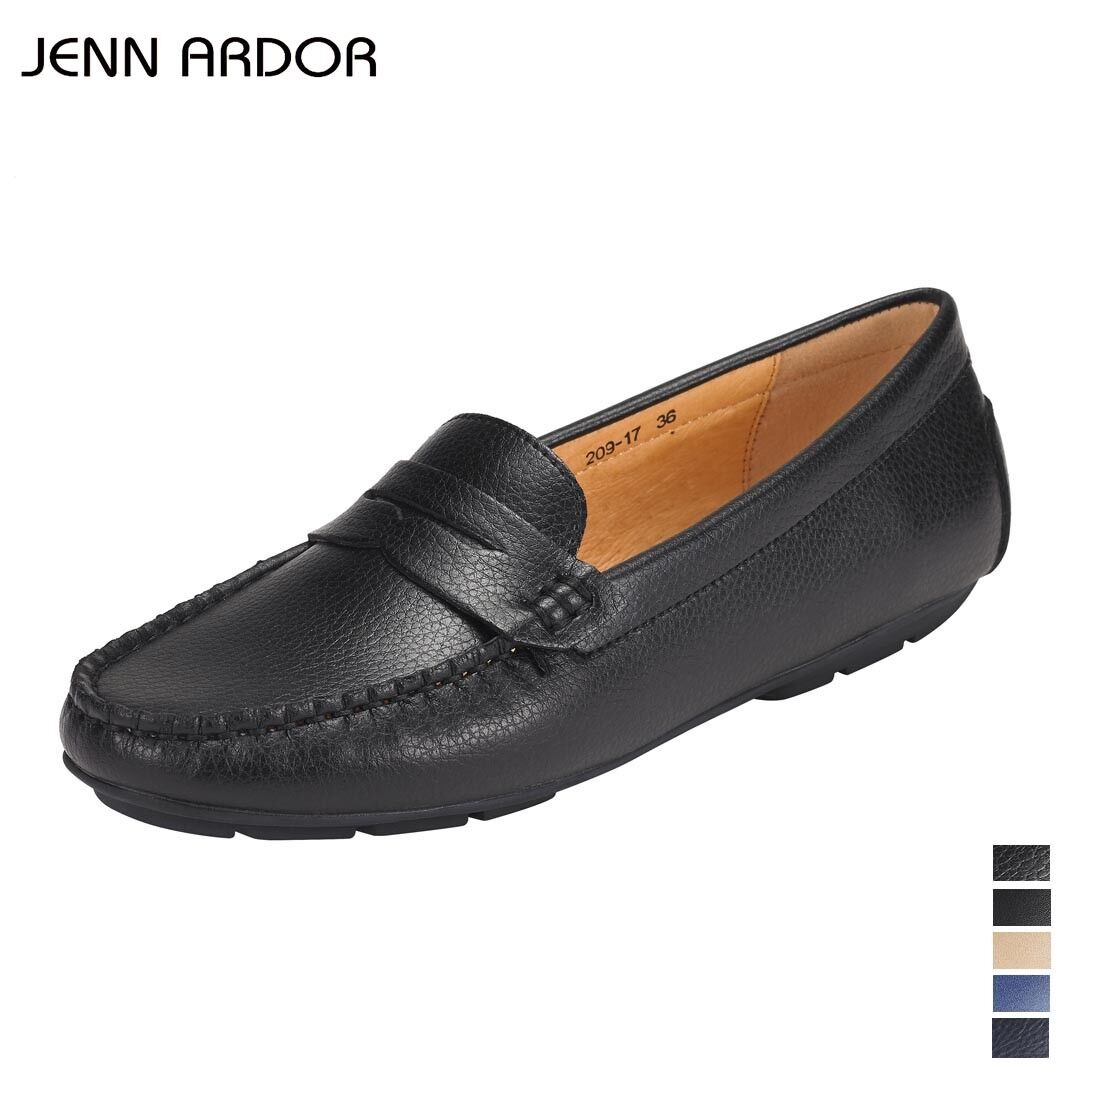 JENN ARDOR Penny Loafers for Women Vegan Leather Slip-On ...